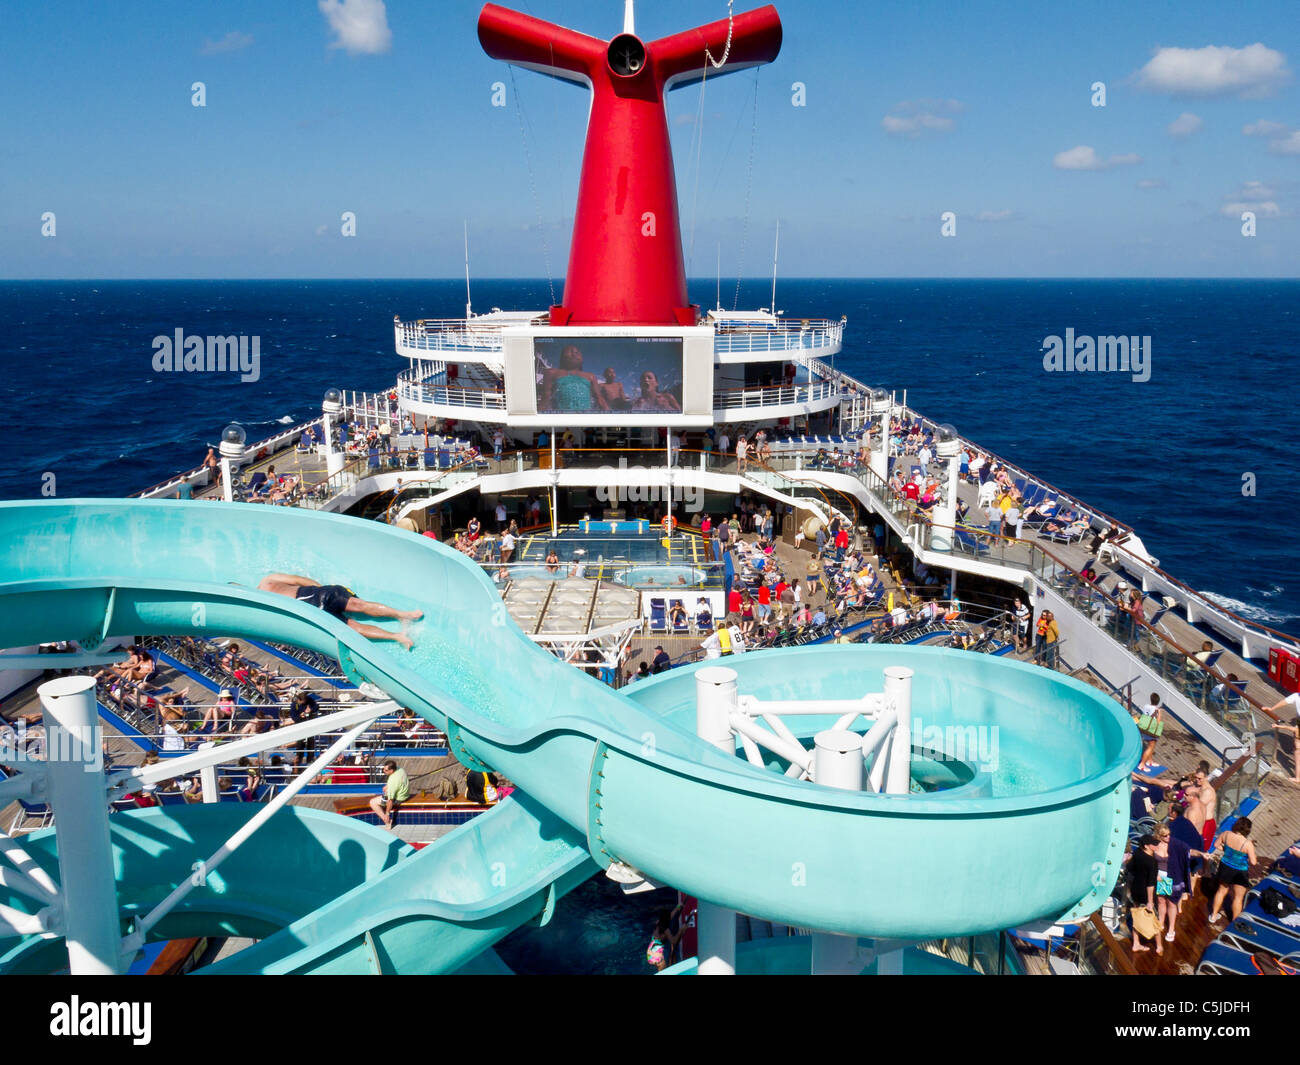 Cruise passengers on deck and water slide on Carnival's Triumph cruise ship in the Gulf of Mexico - Stock Image